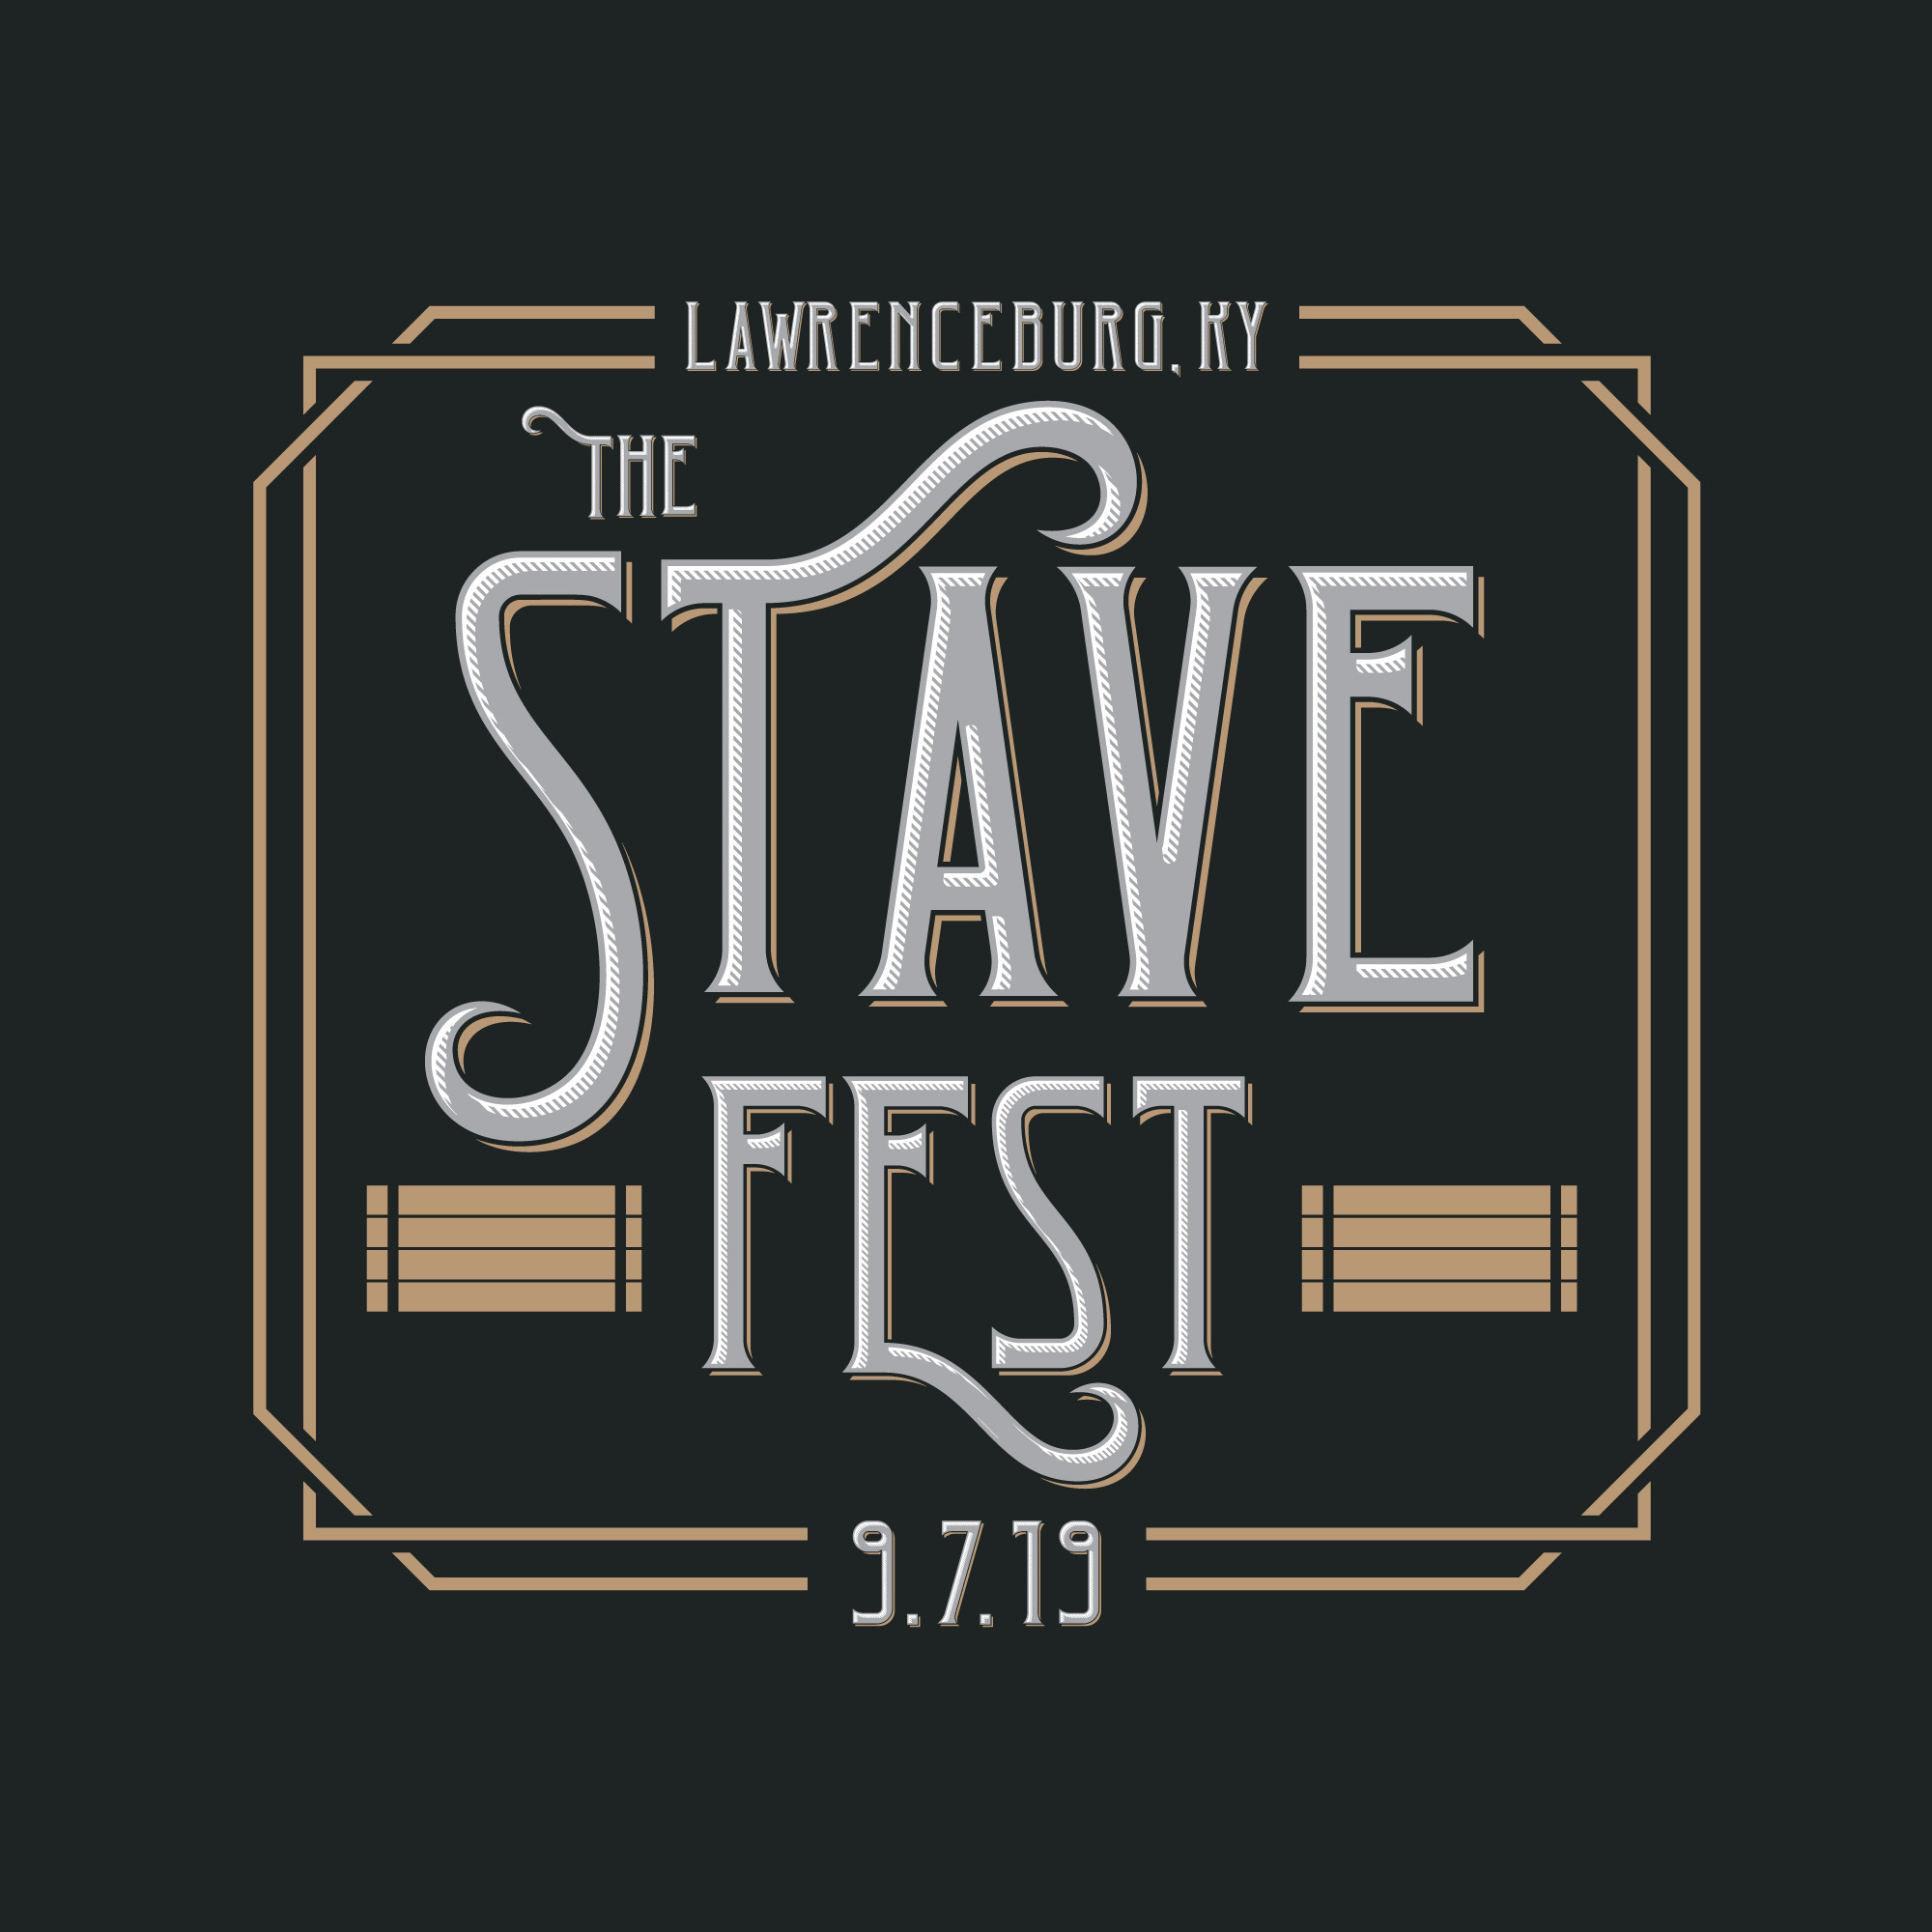 CD6C7650 167C 4463 894A 6BC78FBF79D4 - The Stave Fest